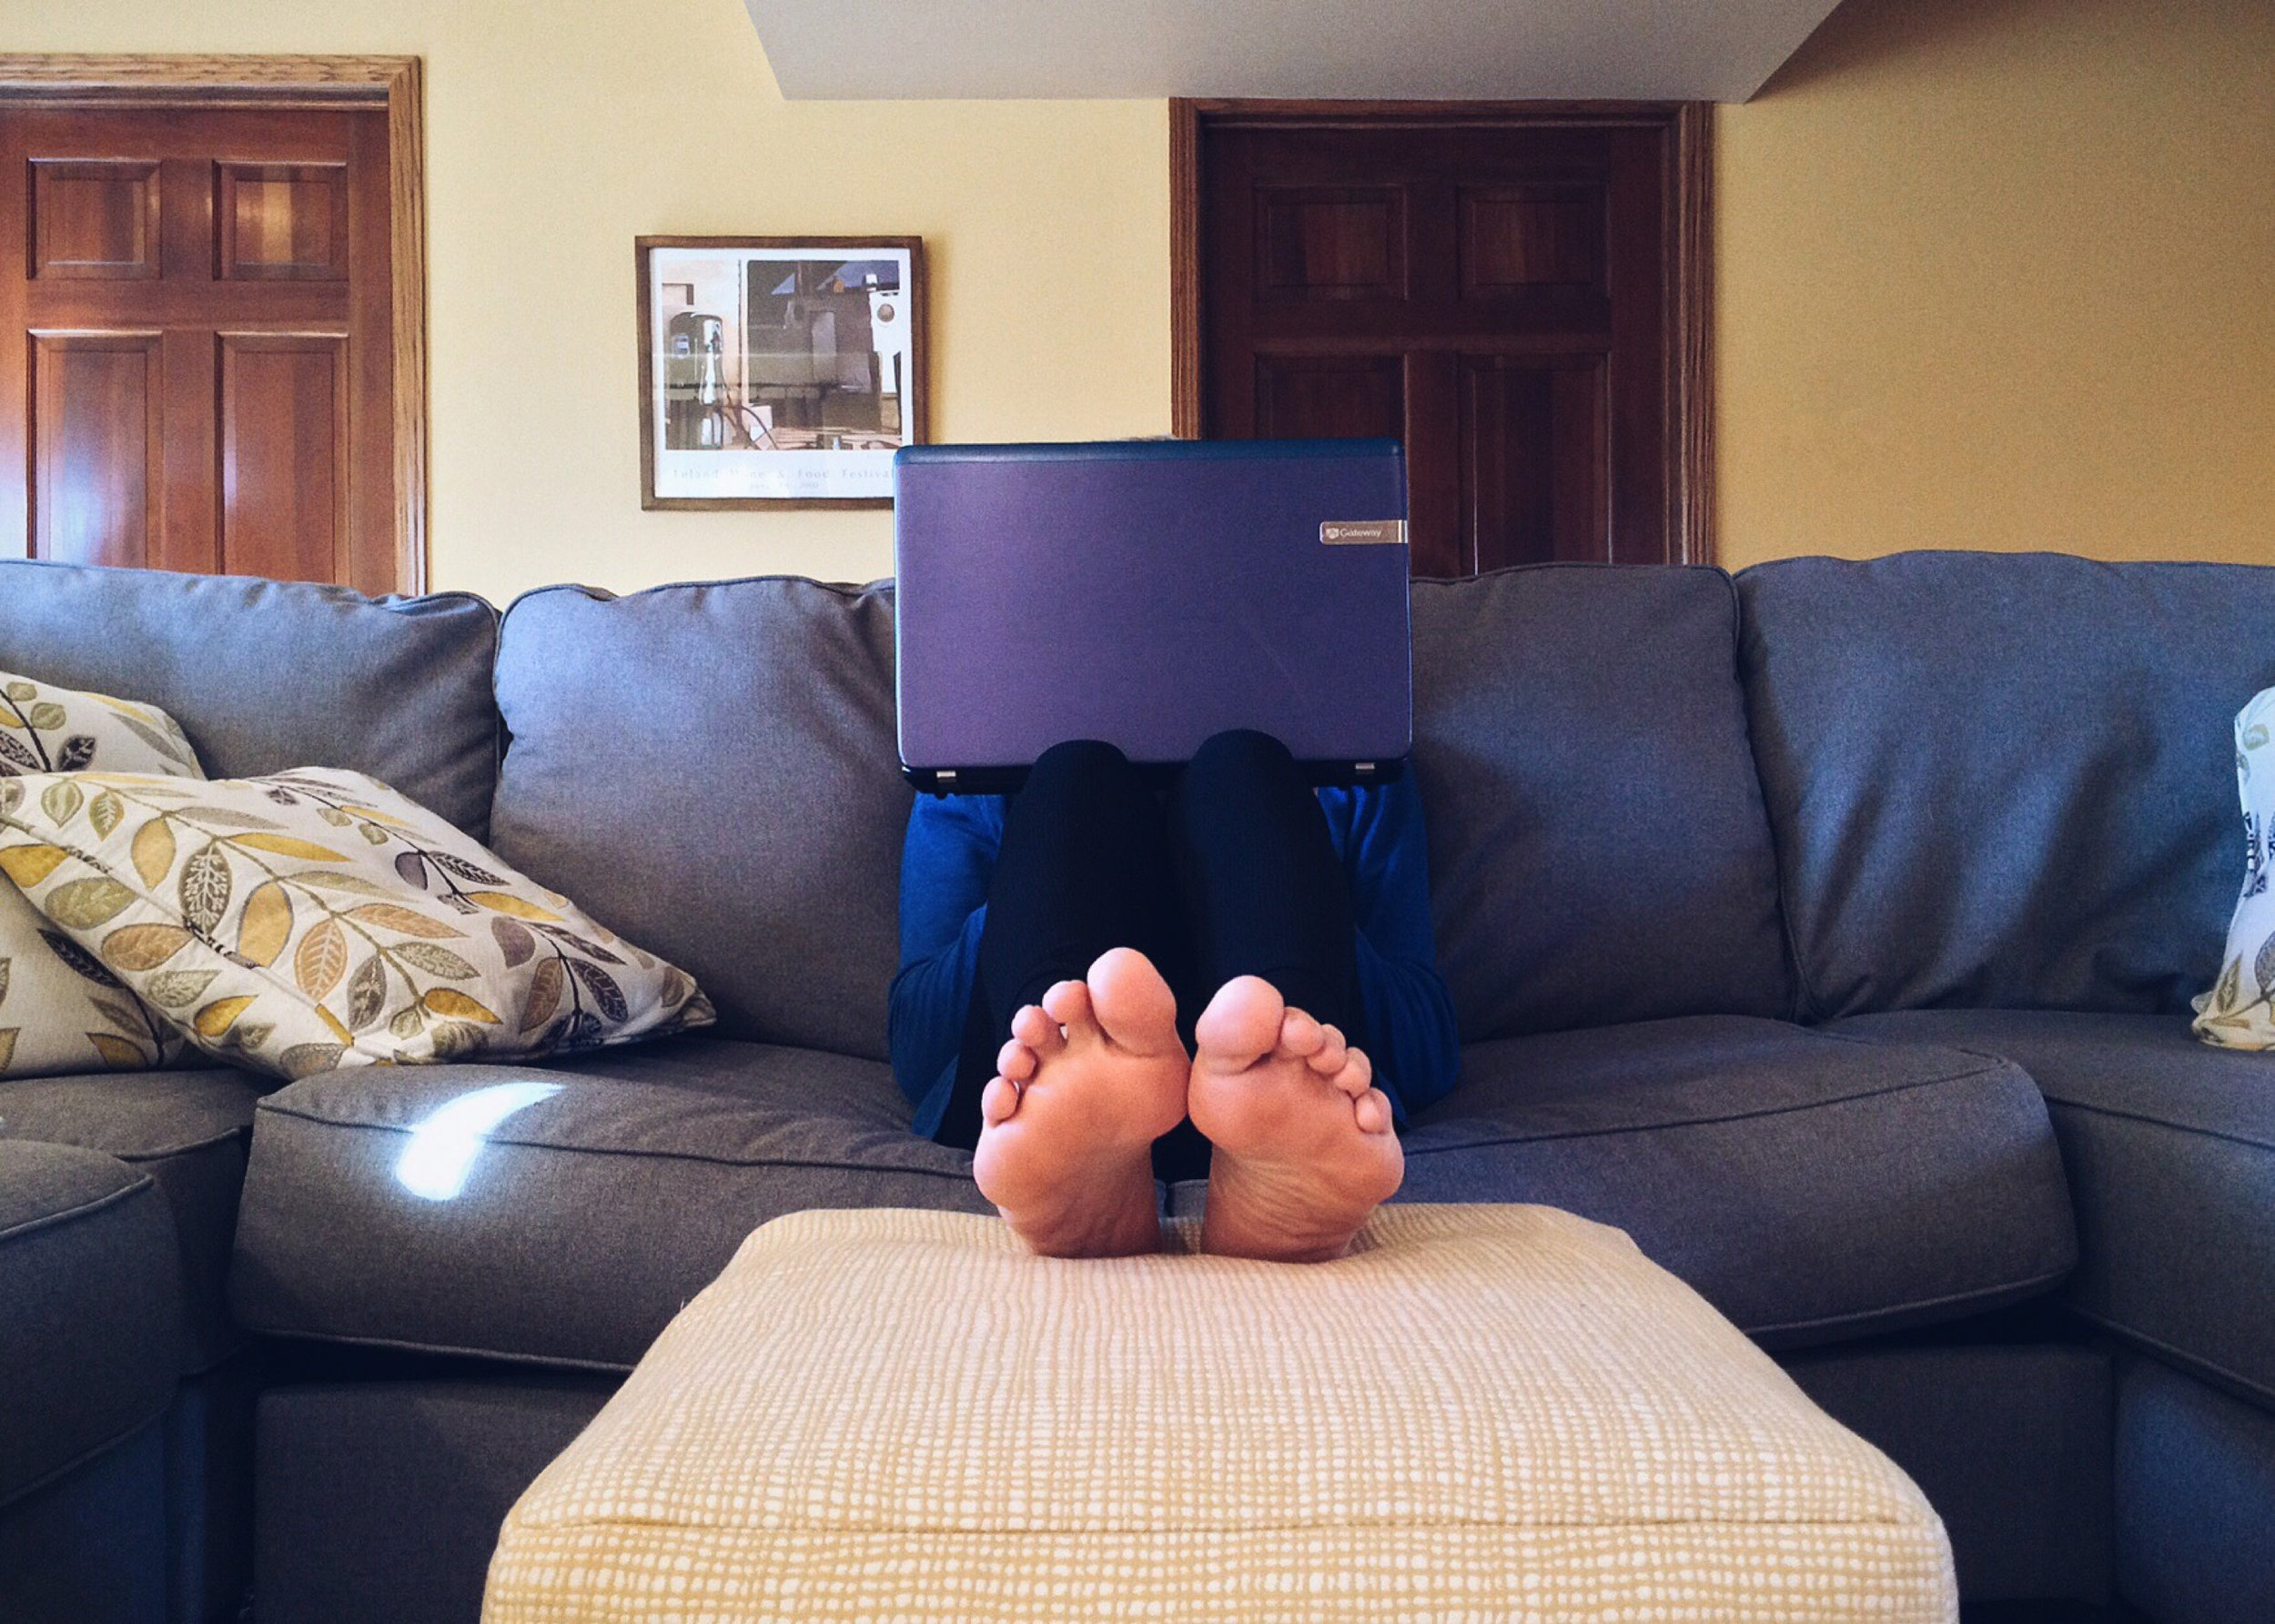 Canva - Person Sitting on Couch While Using Laptop Computer.jpg